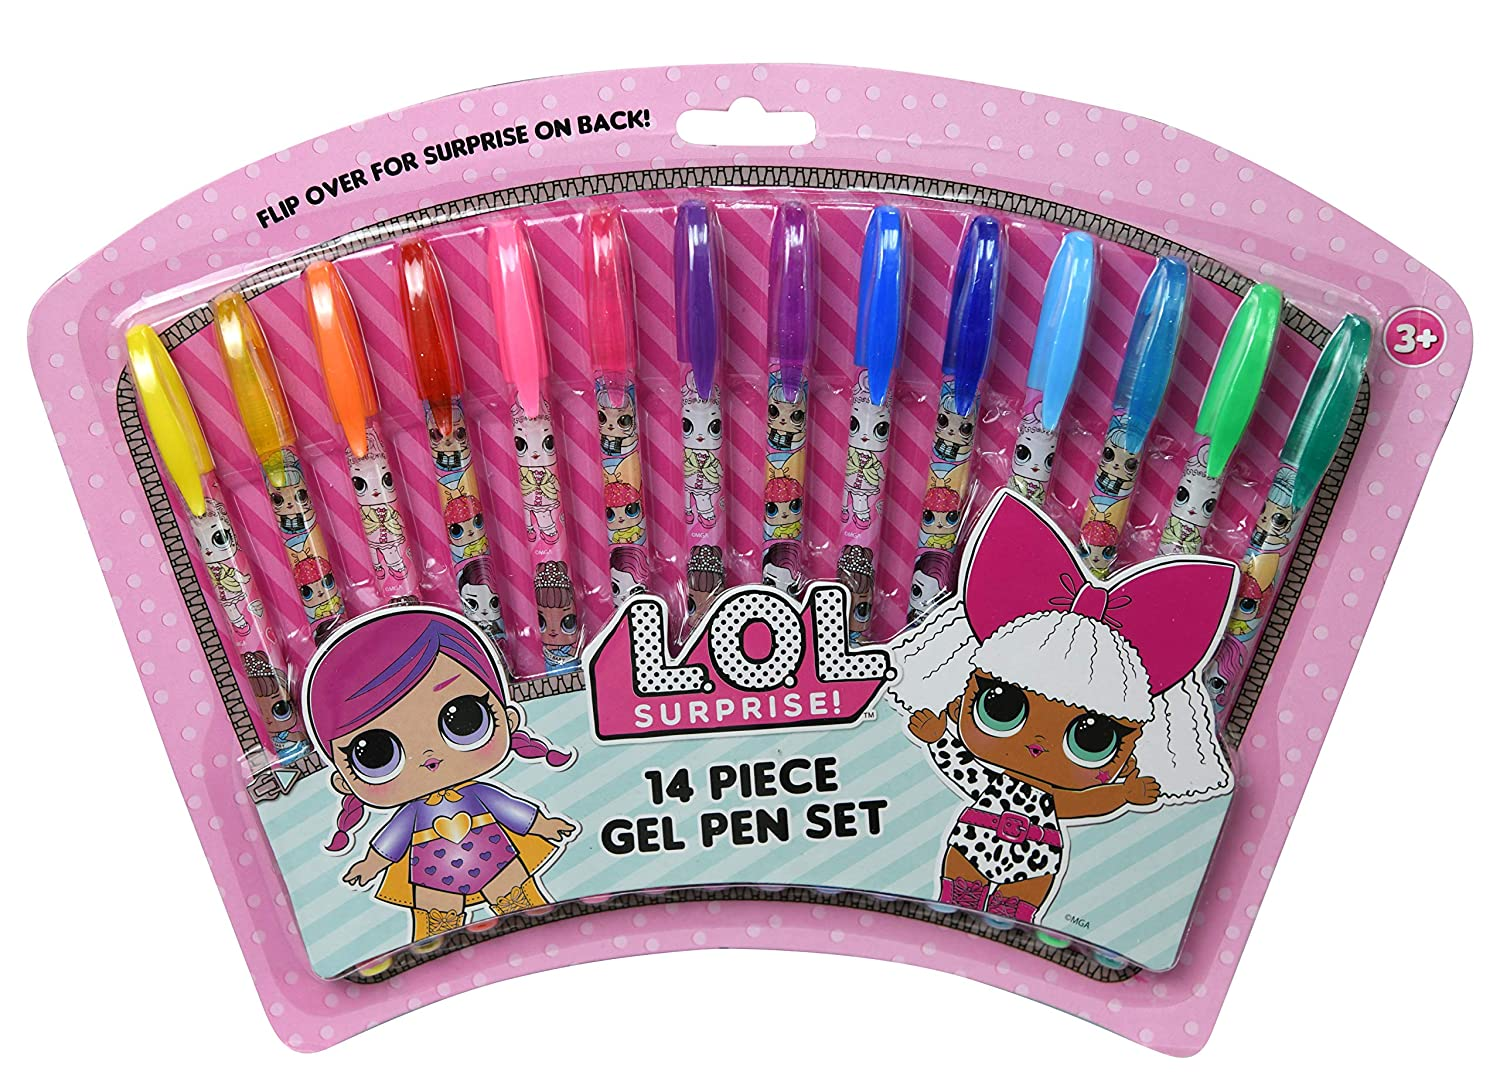 Cute Glitter Journal A5 Gift Set With StickersLOL Dolls For Surprise L.O.L